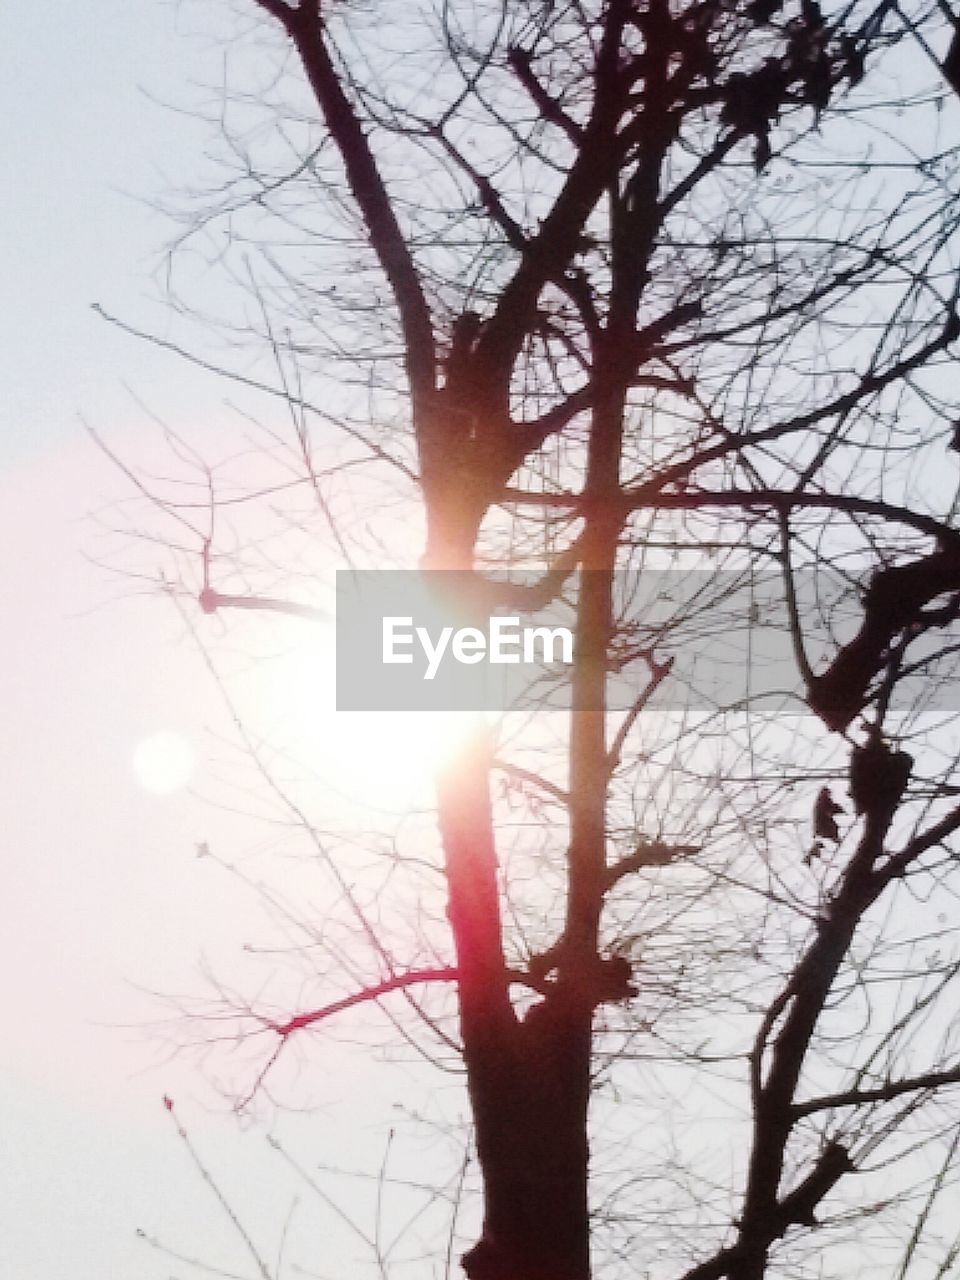 bare tree, sun, tree, branch, lens flare, nature, beauty in nature, winter, sunlight, silhouette, outdoors, cold temperature, sky, tranquility, low angle view, day, no people, snow, scenics, landscape, sunset, close-up